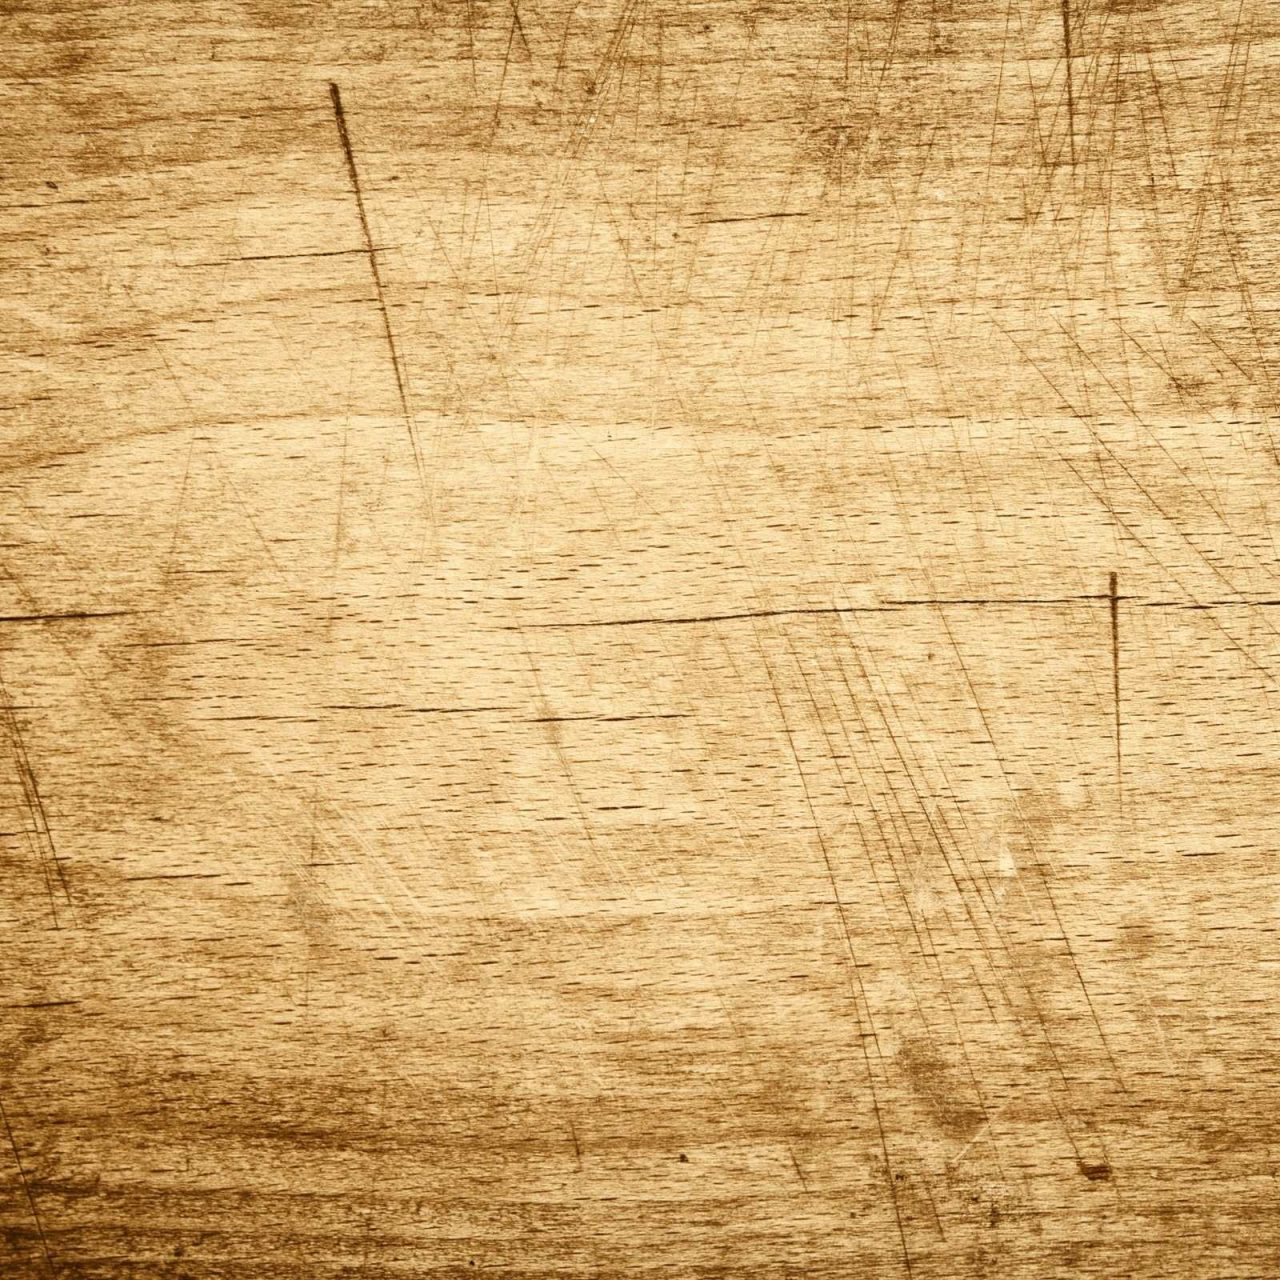 Light Rustic Wood Background Images Hd Wallpapers Hd